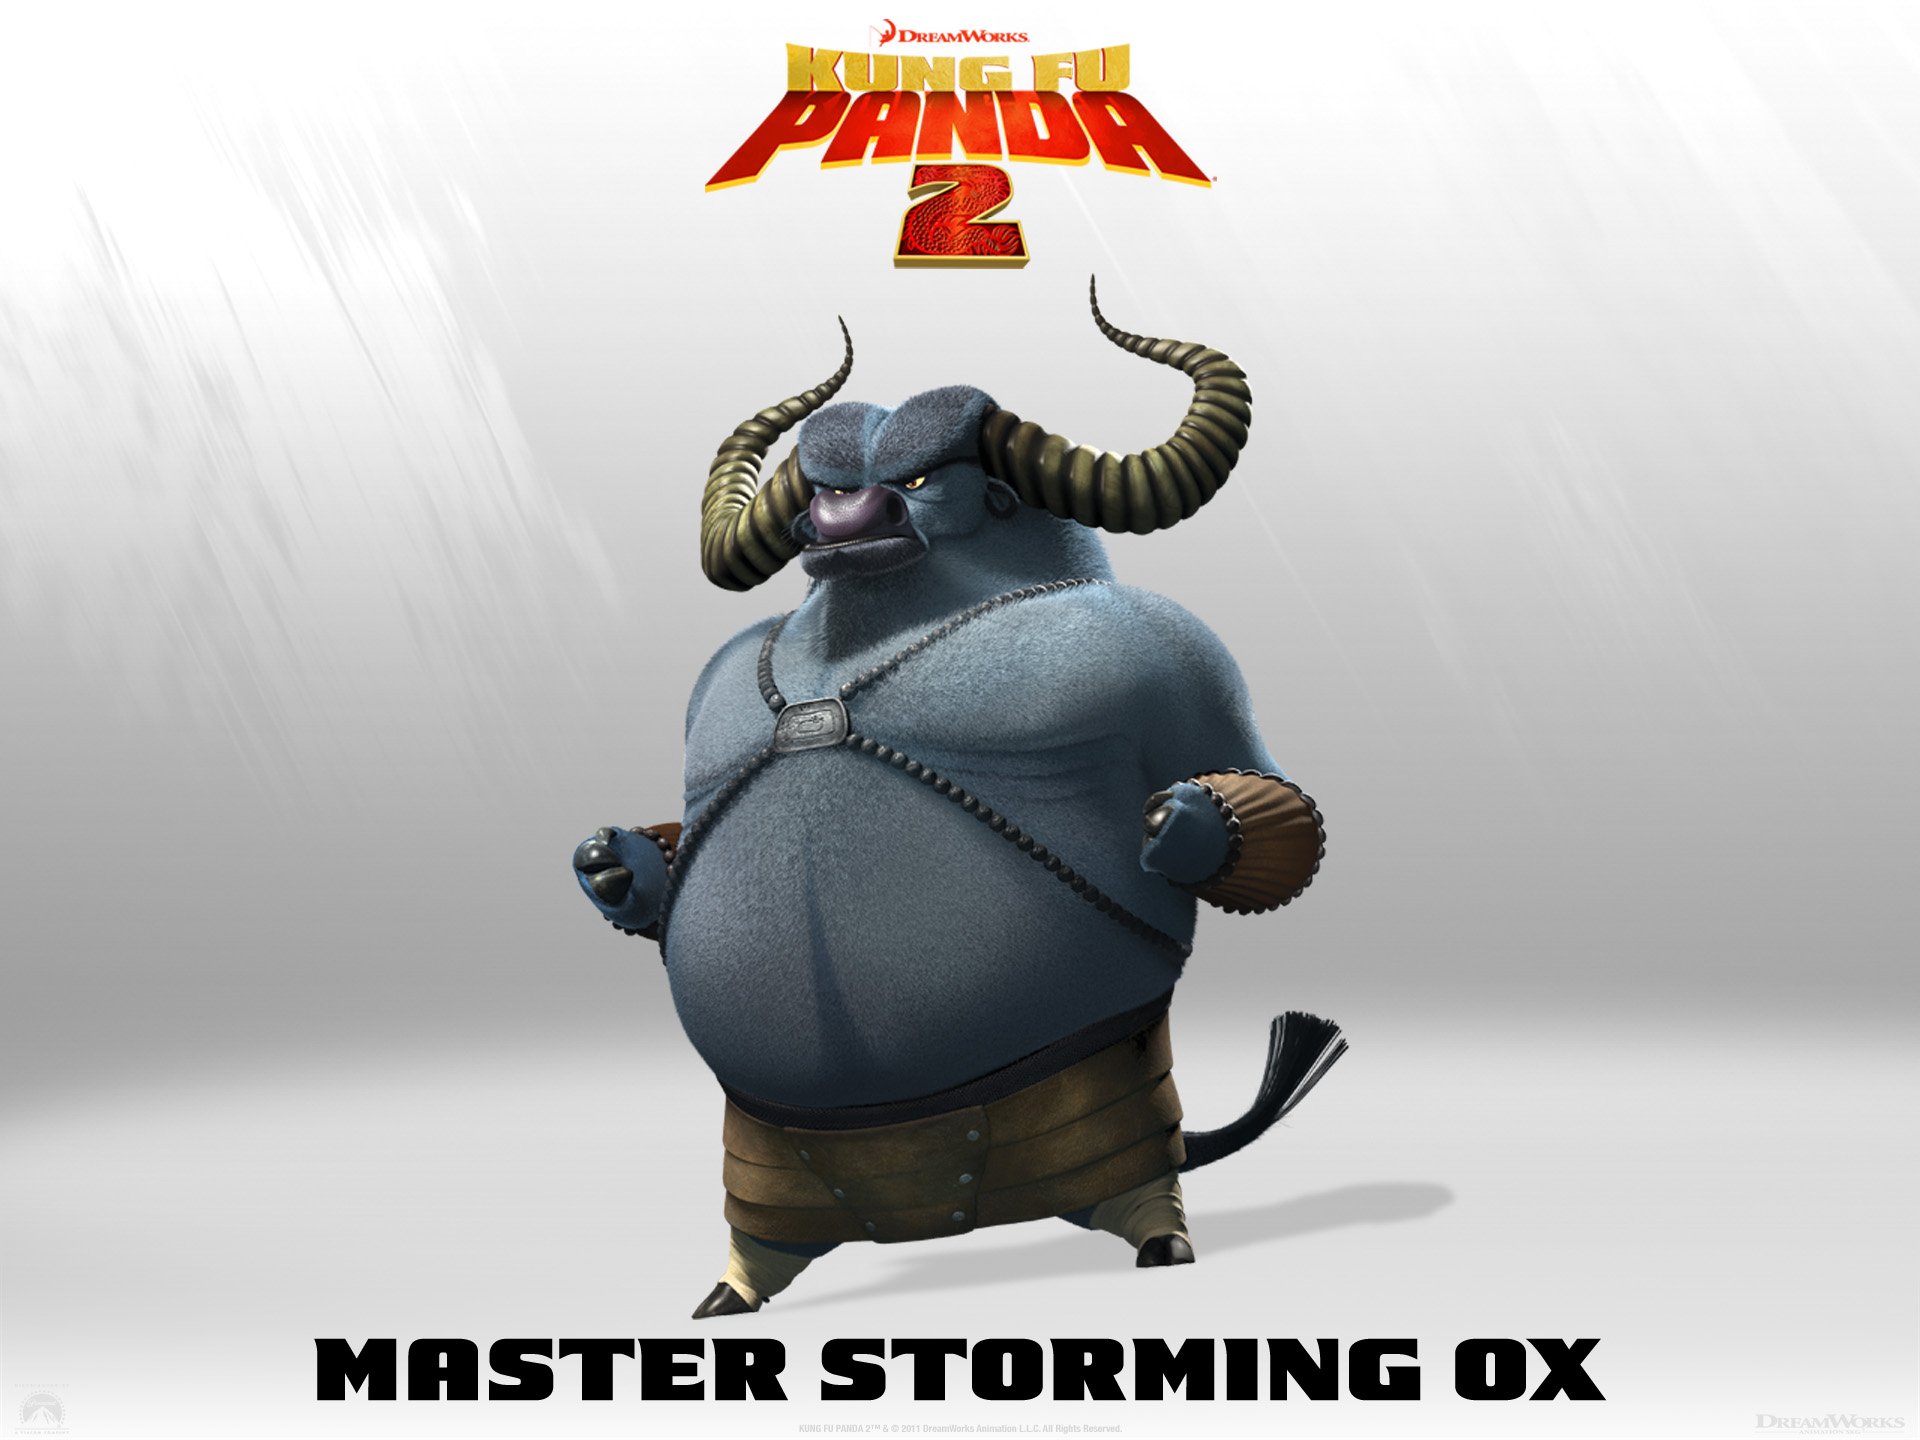 Master storming ox